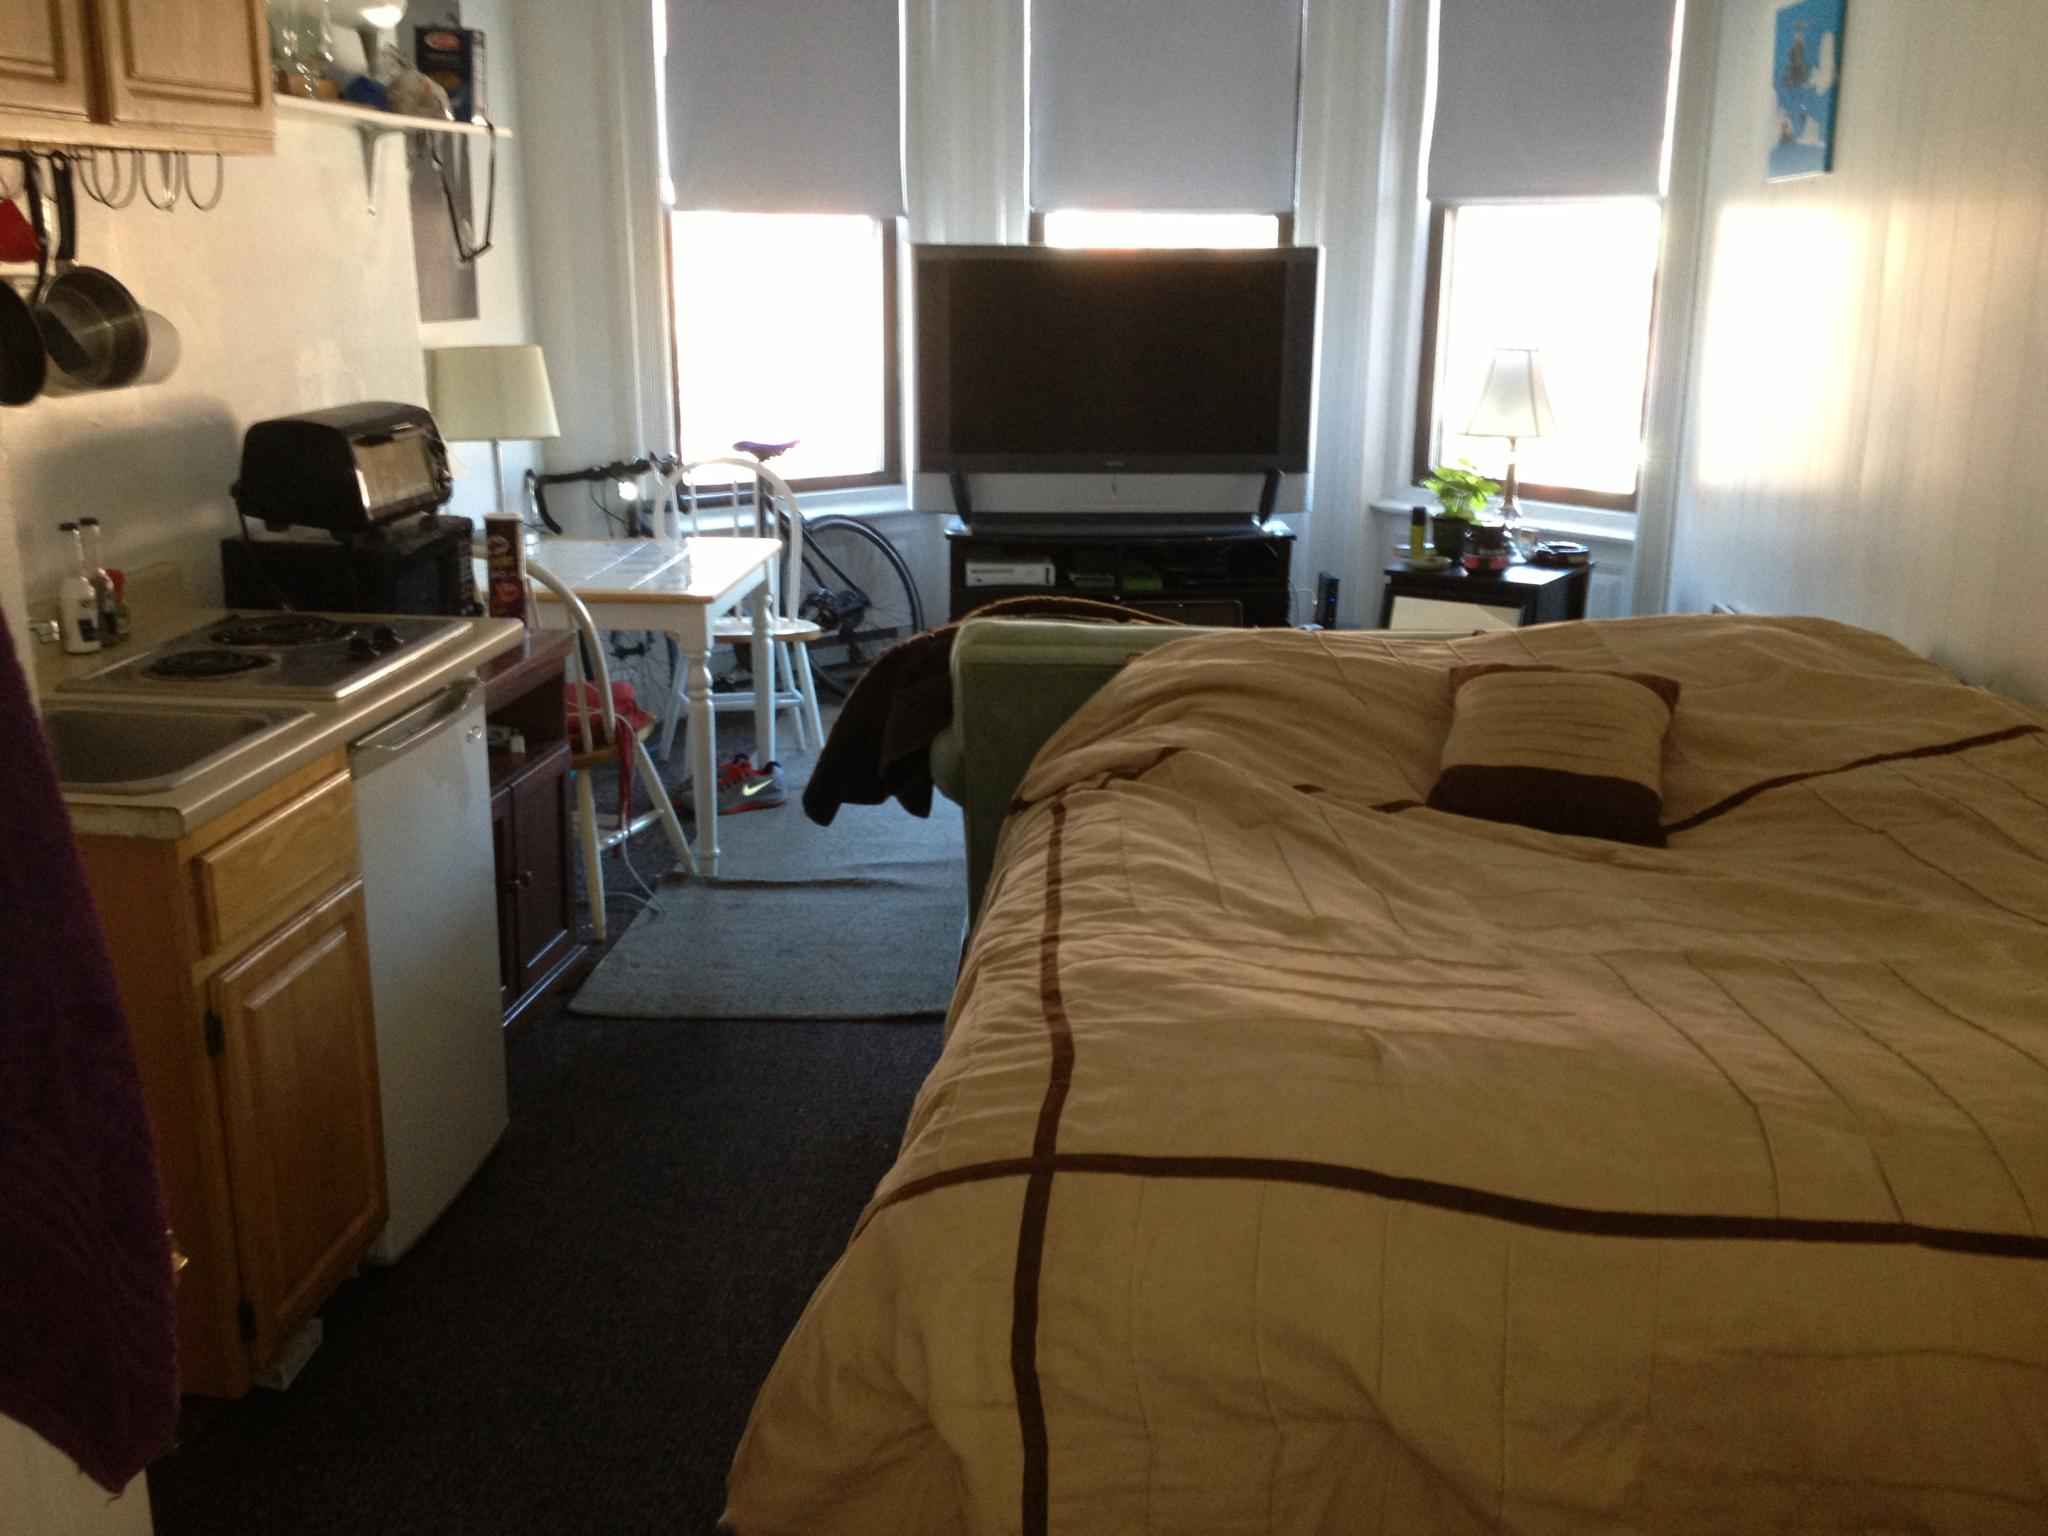 Studio, 1 Bath apartment in Boston, Back Bay for $1,595